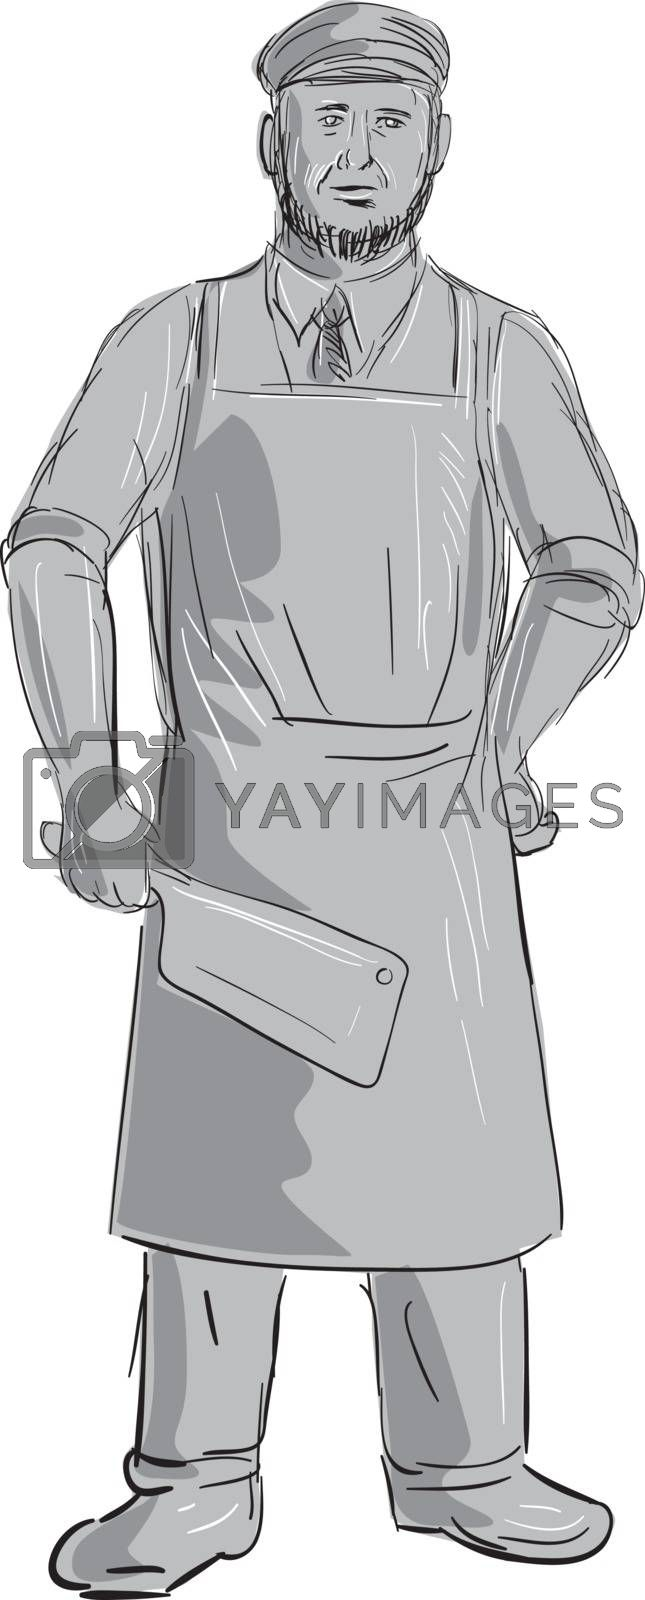 Illustration of a Vintage Butcher holding Meat Cleaver knife Standing front view done in hand sketch Drawing style.